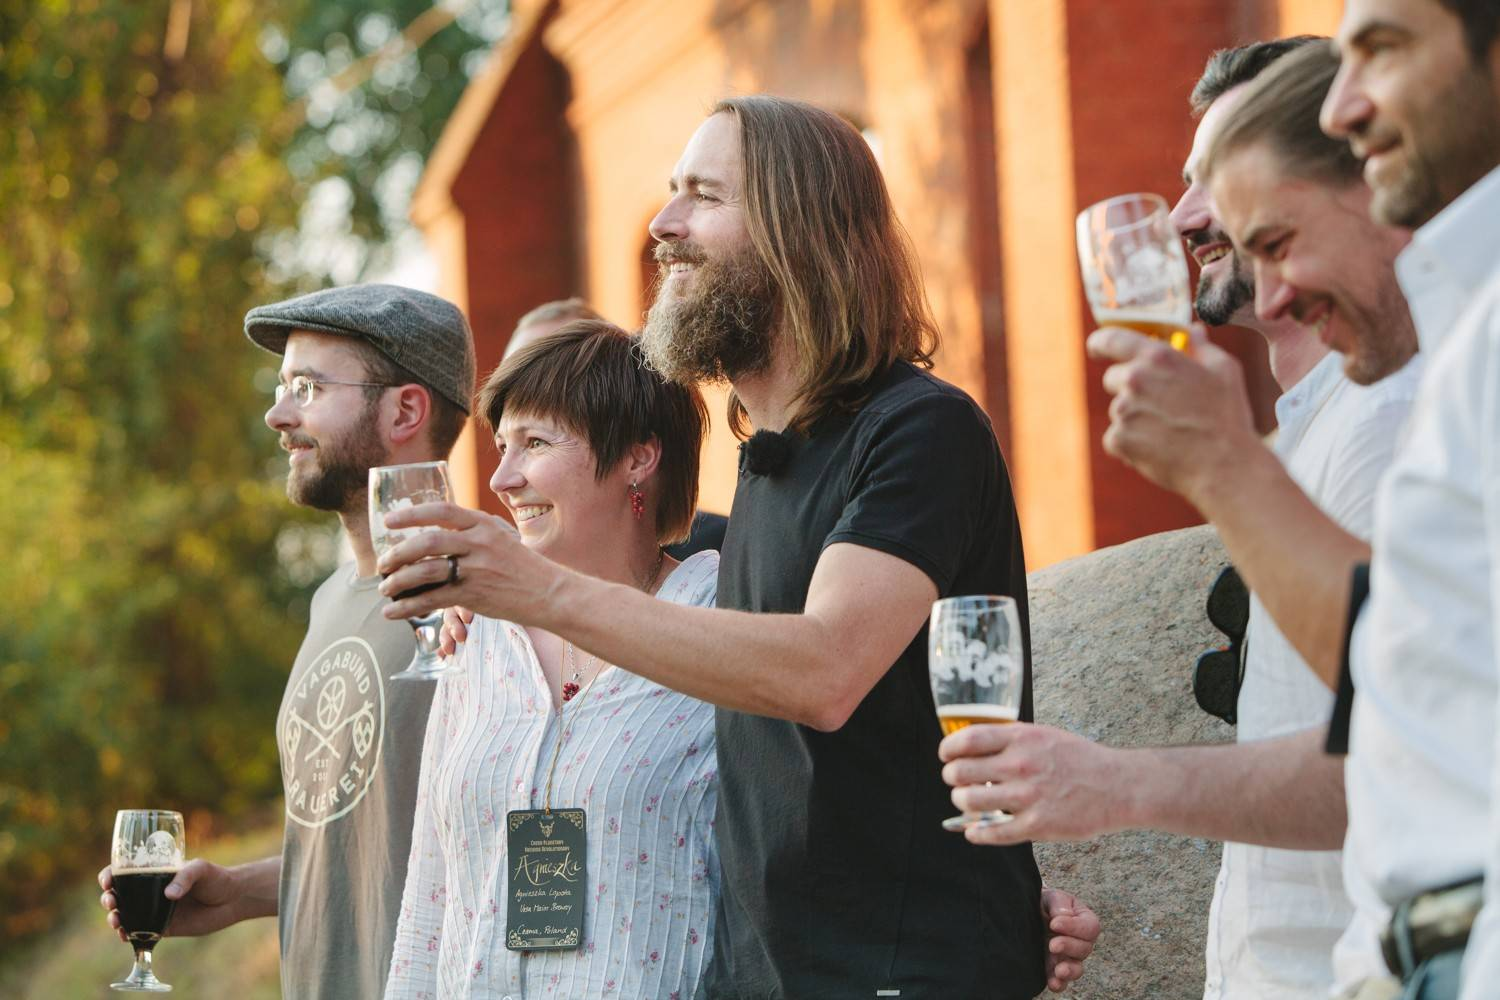 Stone Brewing Co. CEO and co-founder Greg Koch, center, toasts the crowd on July 19 after announcing that the Escondido, Calif., brewery plans to build a brewery and bistro in Berlin.